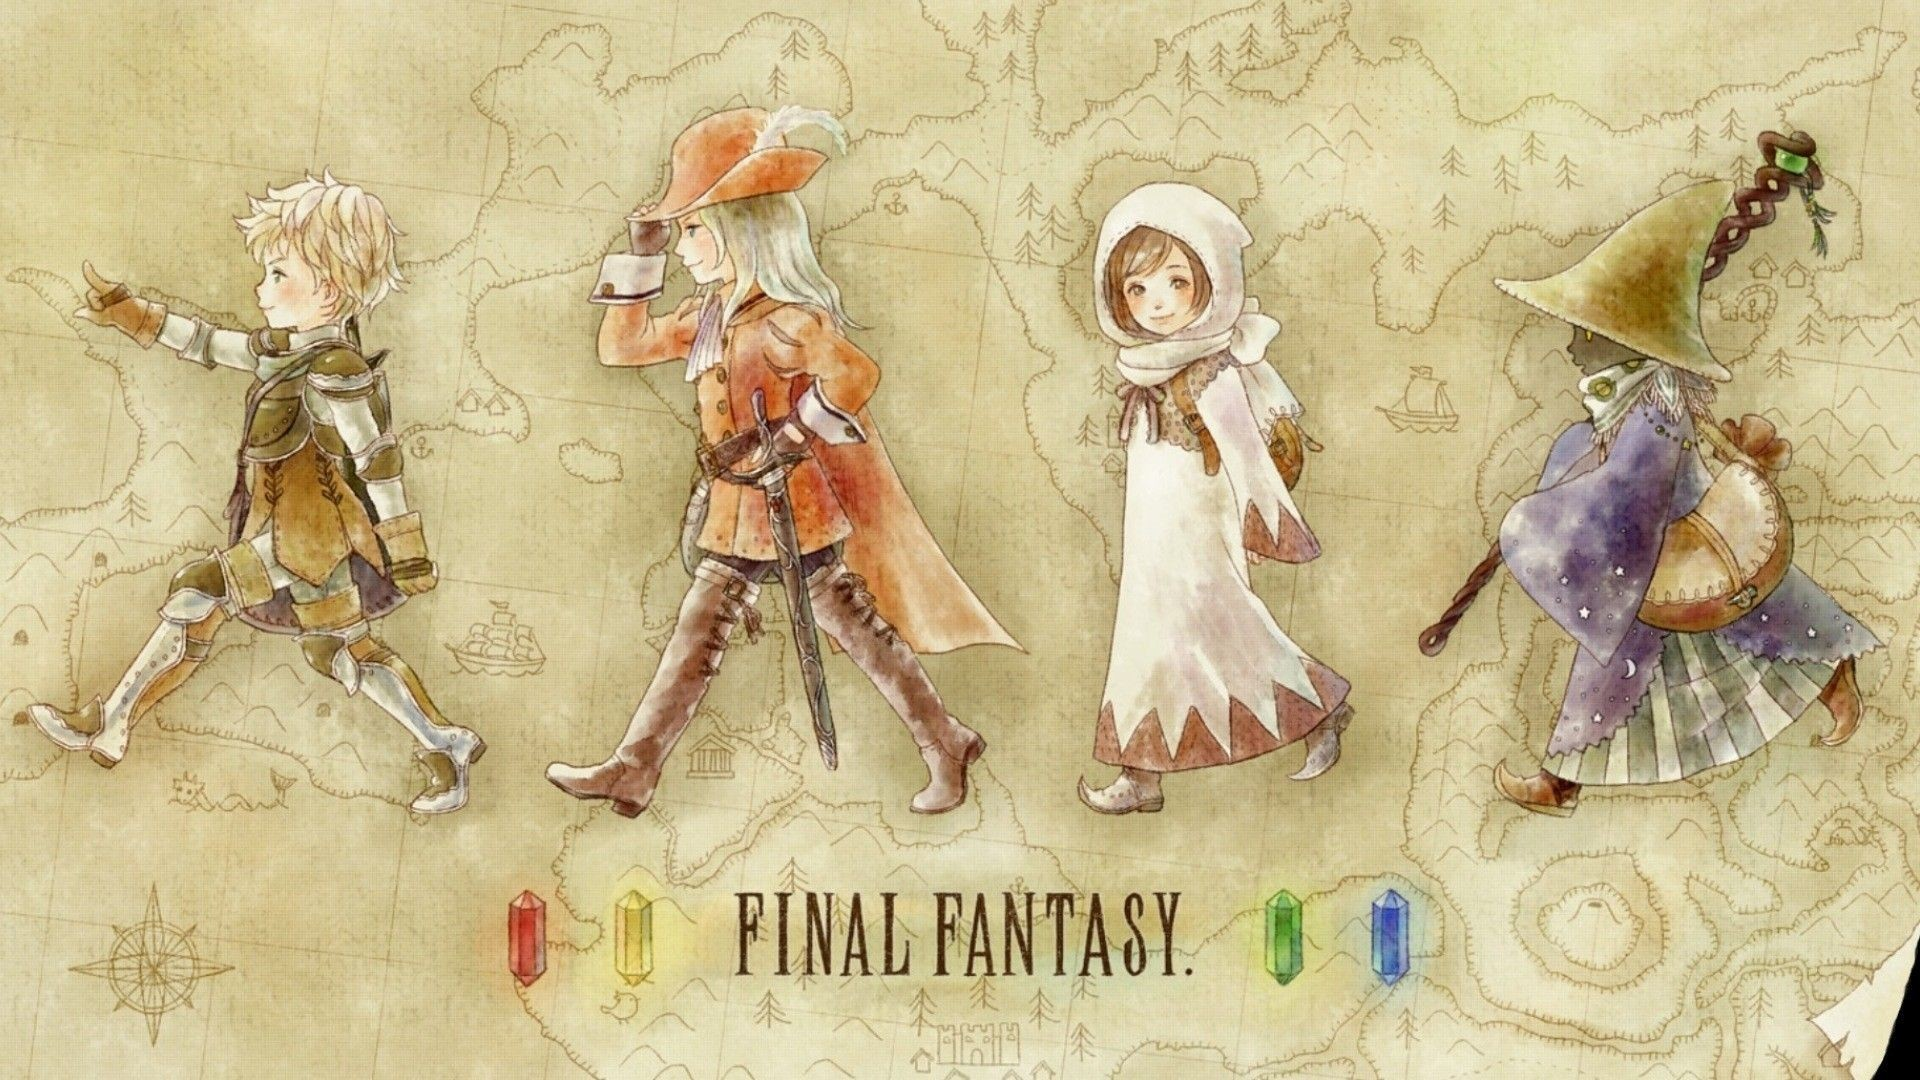 1920x1080 Final Fantasy III HD Wallpaper 13 - 1920 X 1080